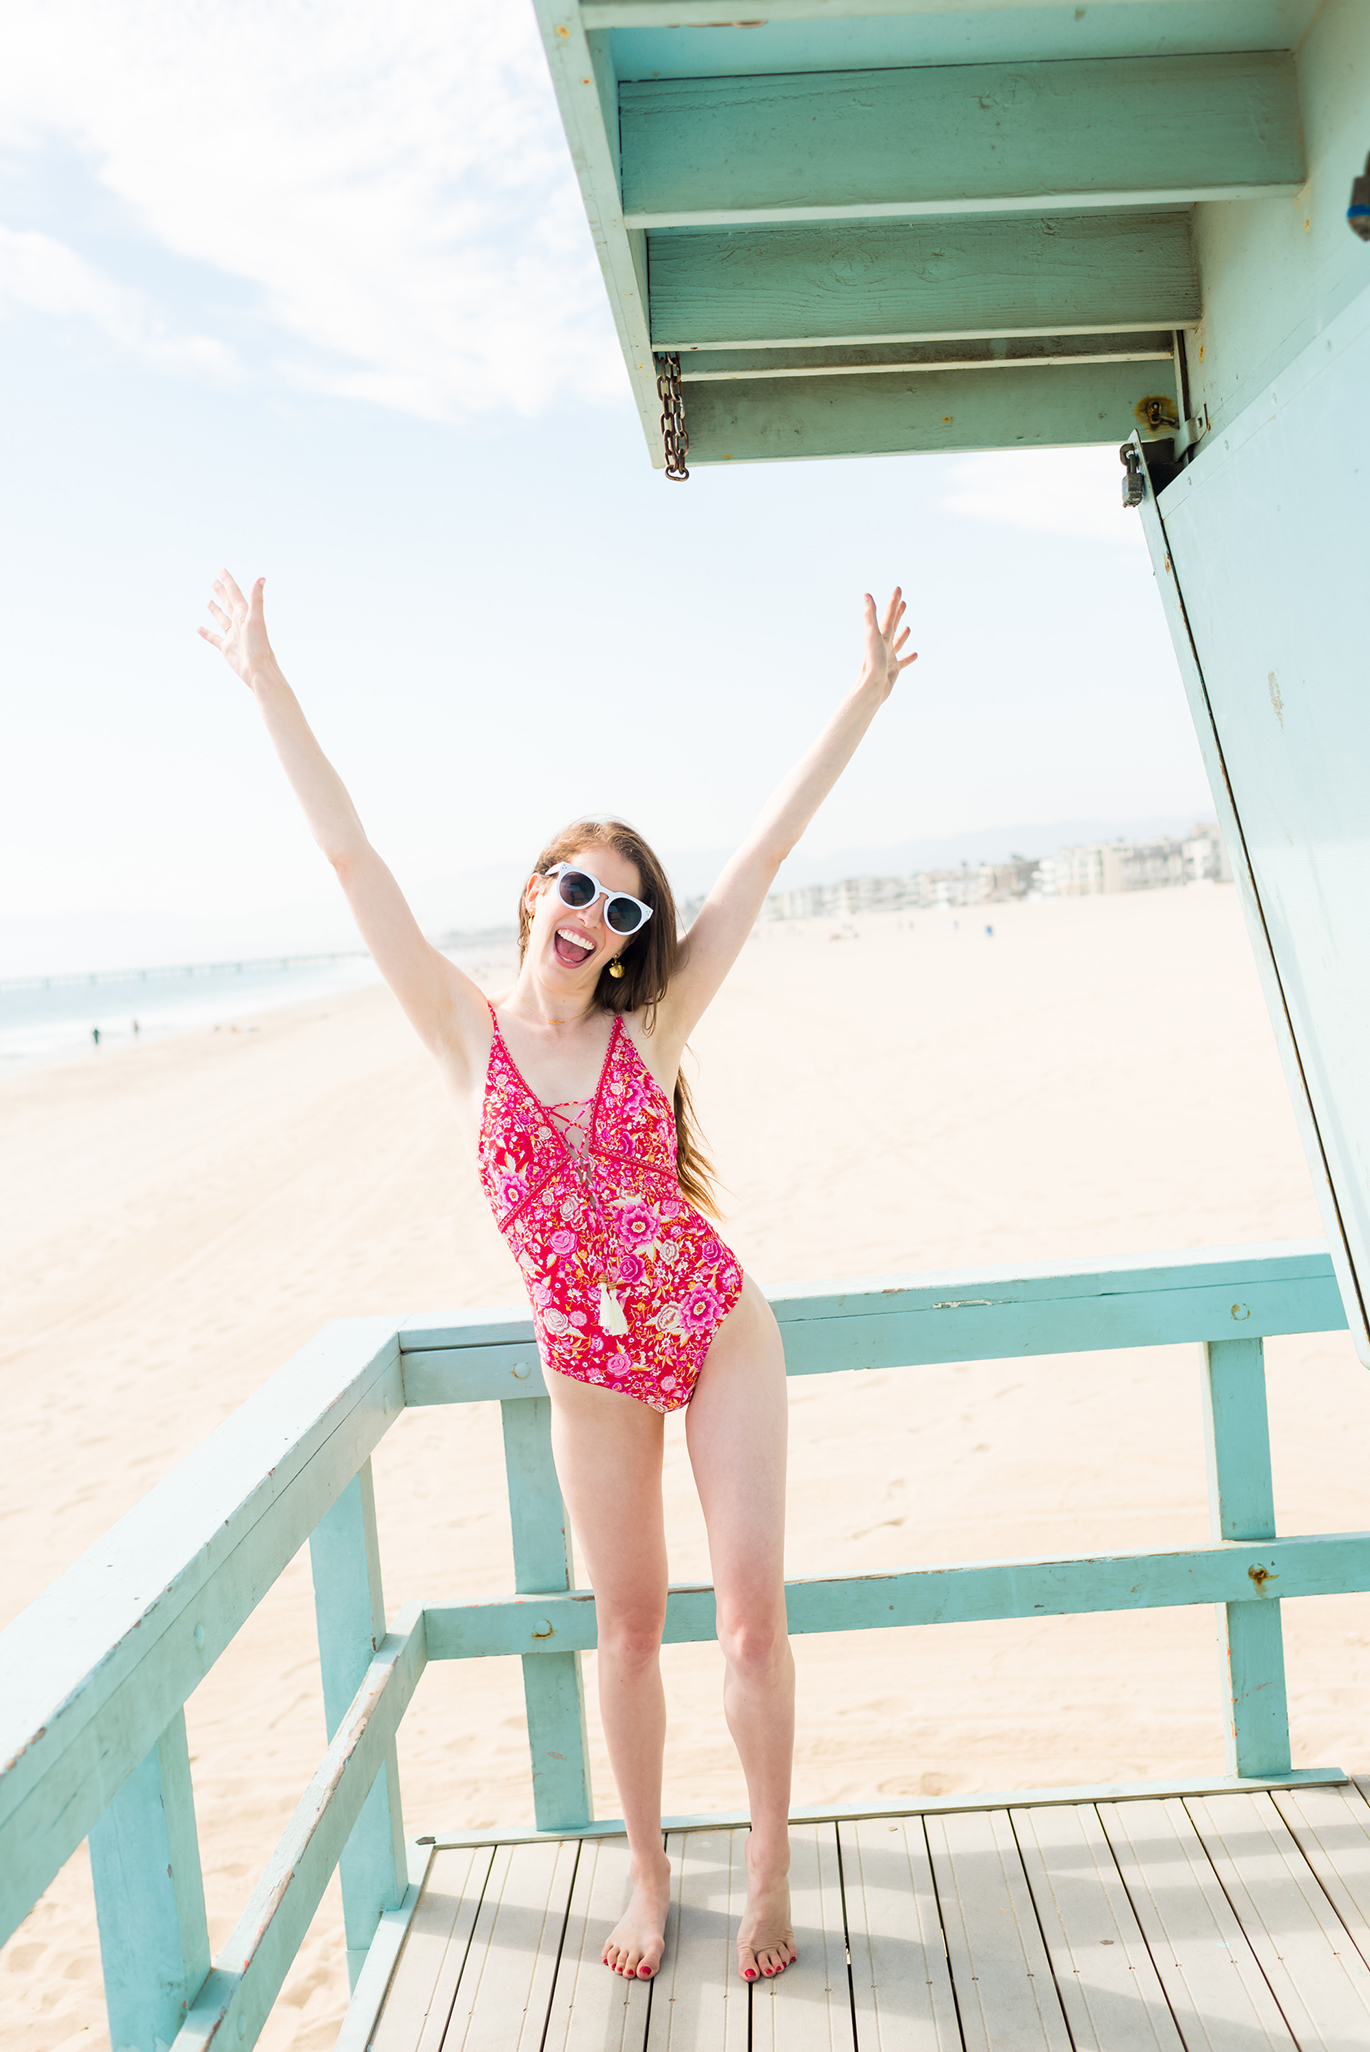 Colorful one-piece bathing suit